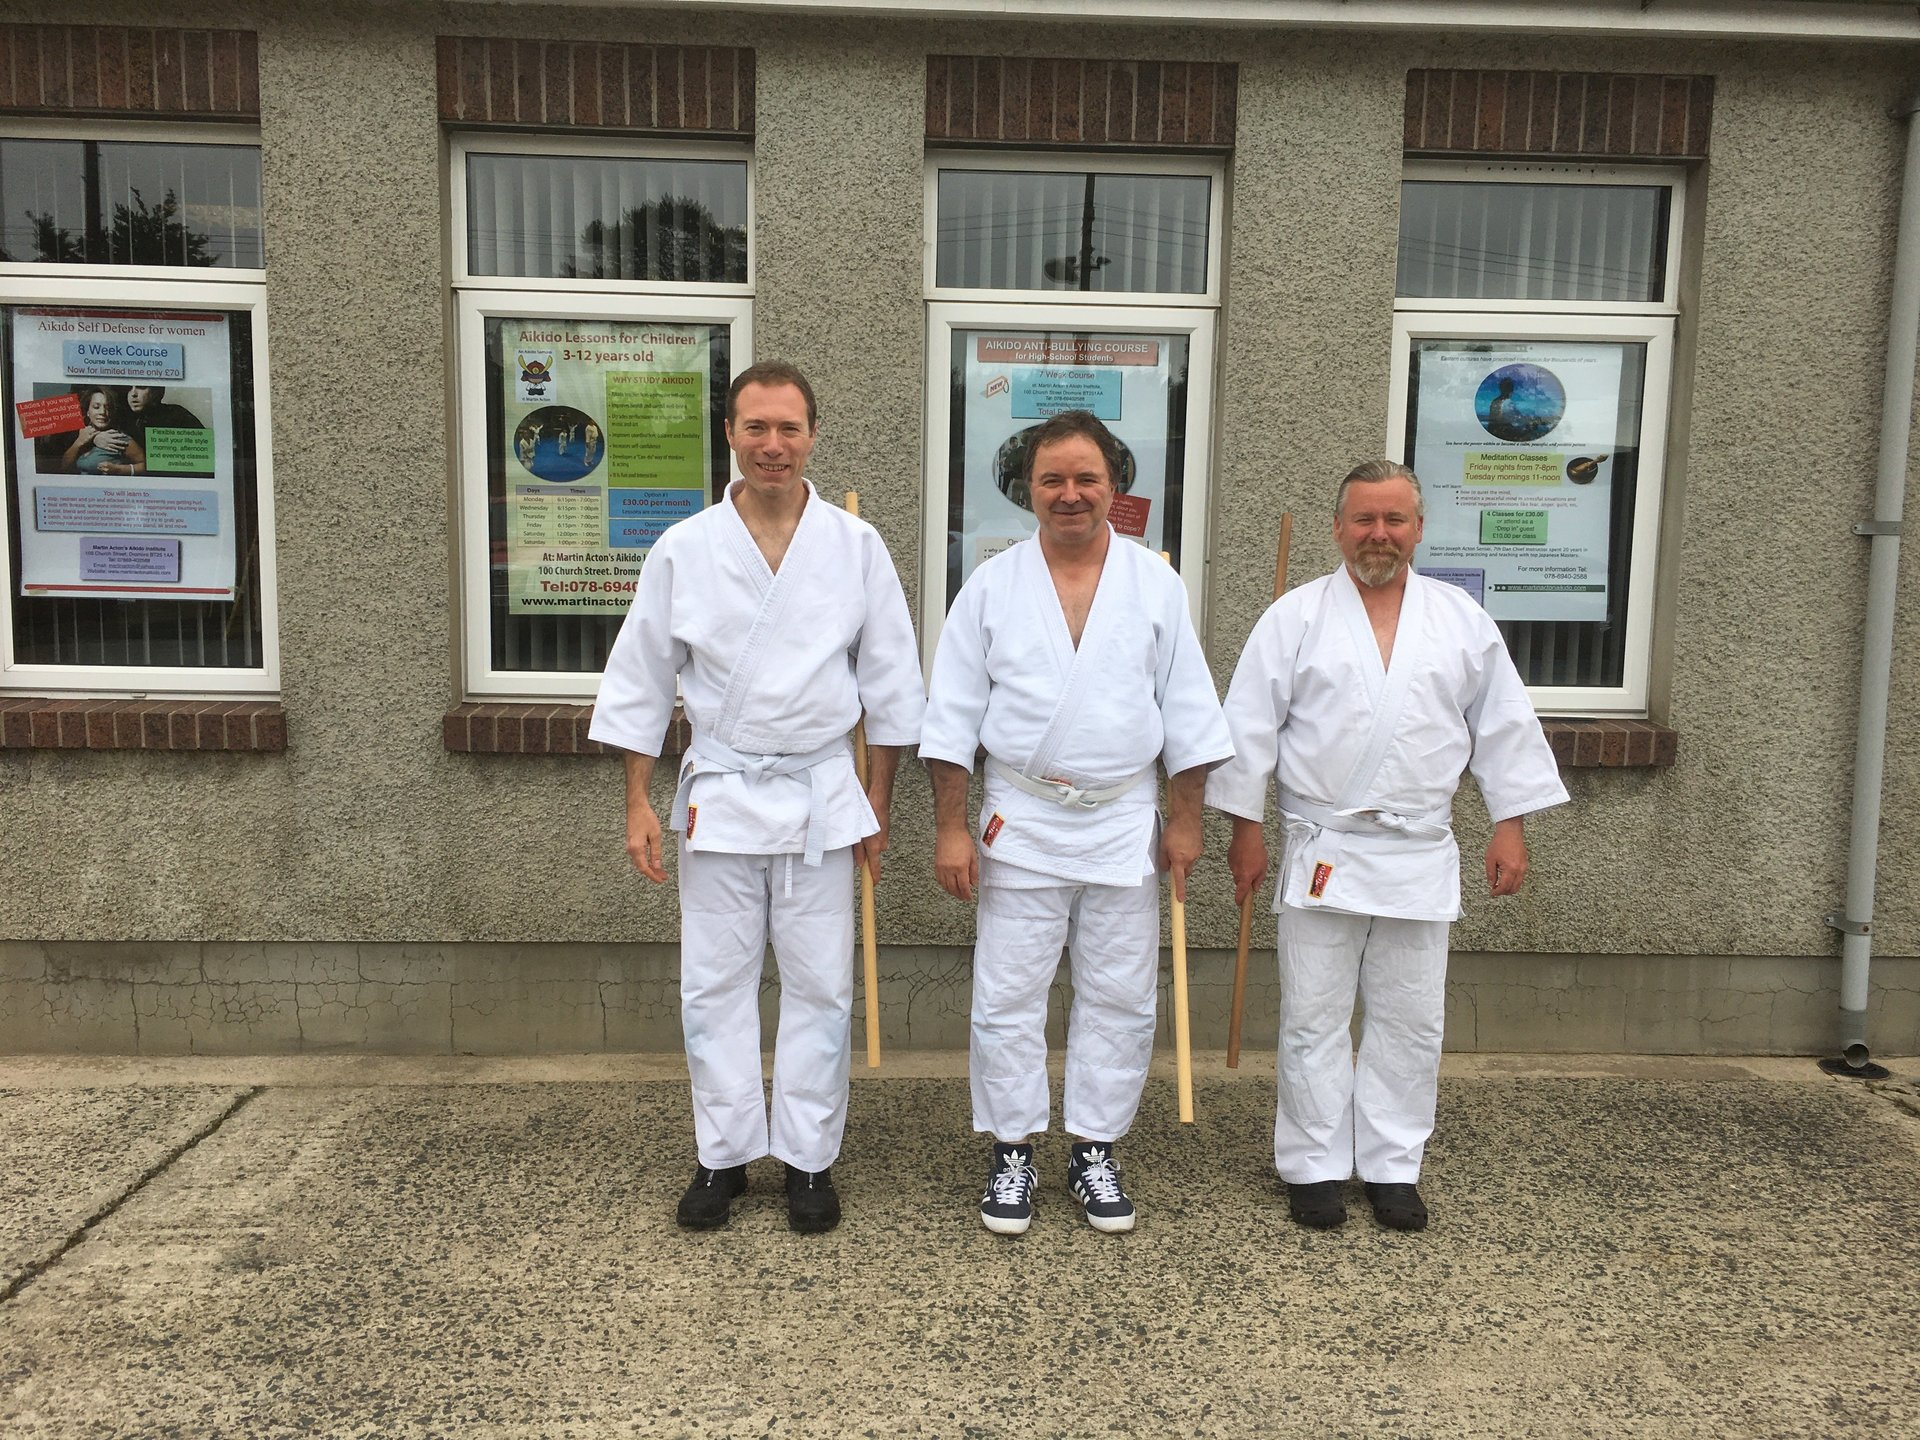 Aikido jo Seminar three students attended on 27/8/2017 at Martin Acton's Aikido Institute